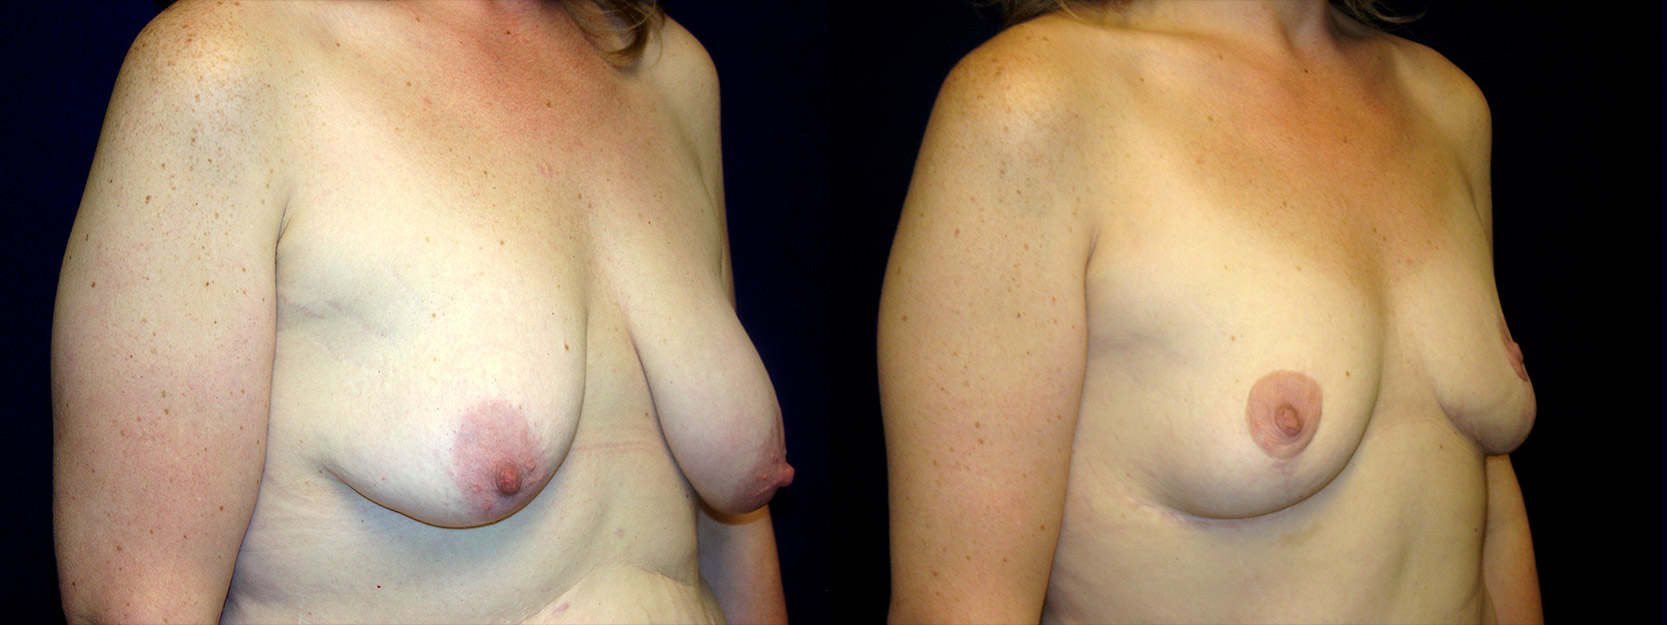 Right 3/4 View - Breast Reduction After Weight Loss